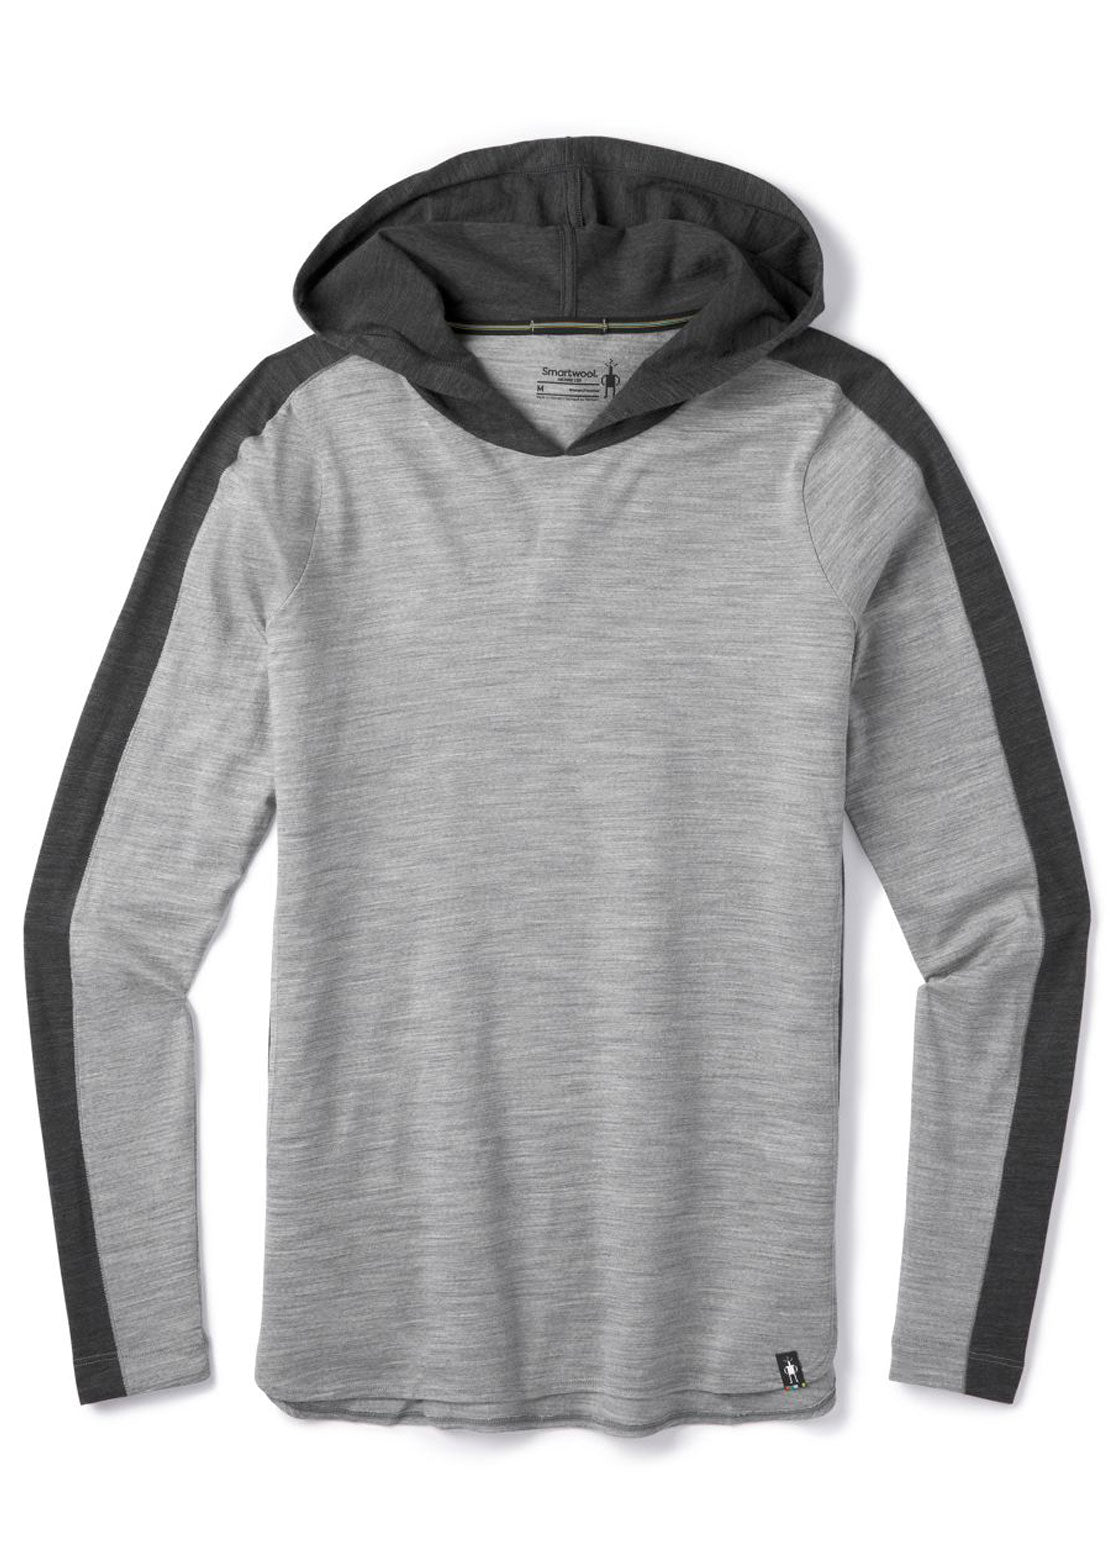 Smartwool Women's Merino 150 Hoodie Light Gray Heather